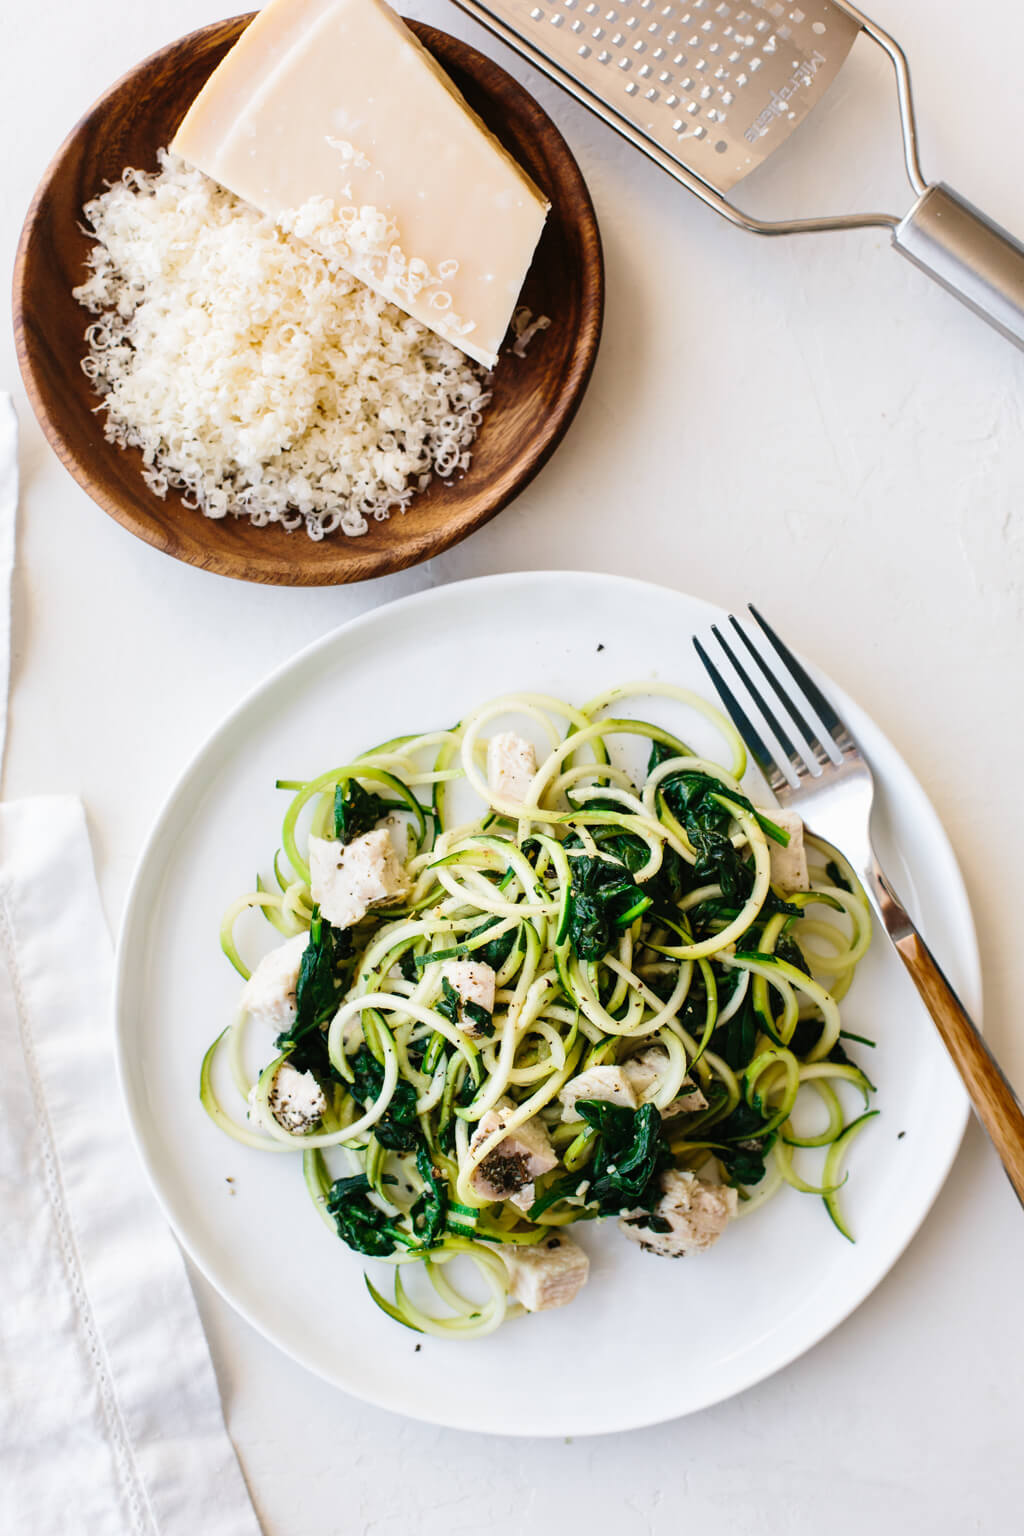 Zucchini noodles with chicken, spinach and parmesan are an easy, gluten-free, paleo, low-carb and keto friendly zucchini noodles recipe.